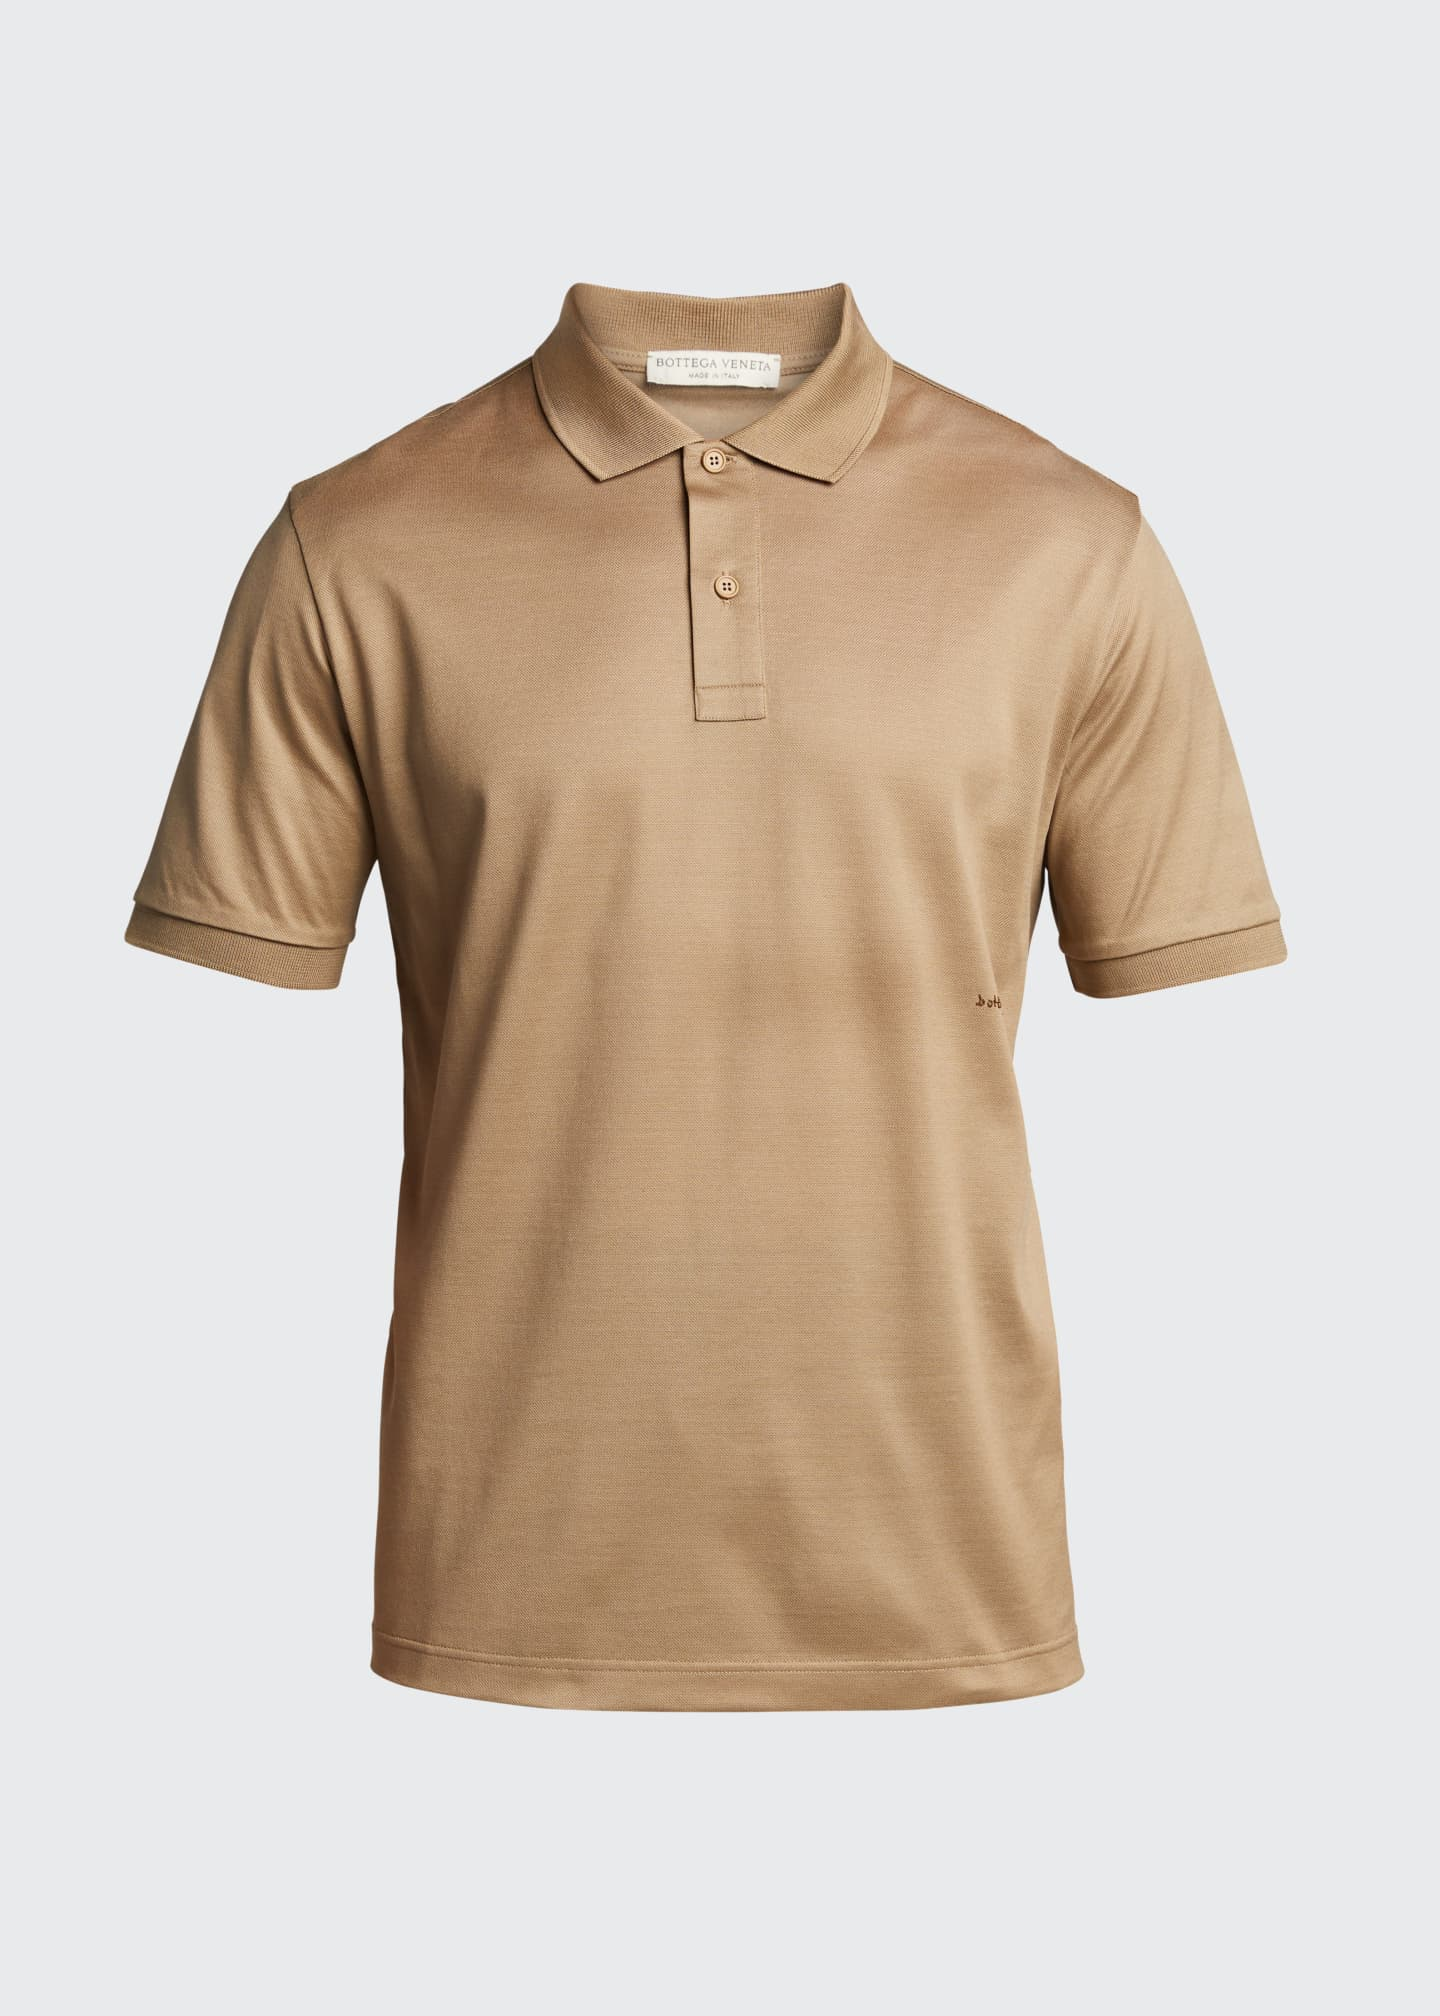 Image 5 of 5: Men's Solid Pique Polo Shirt